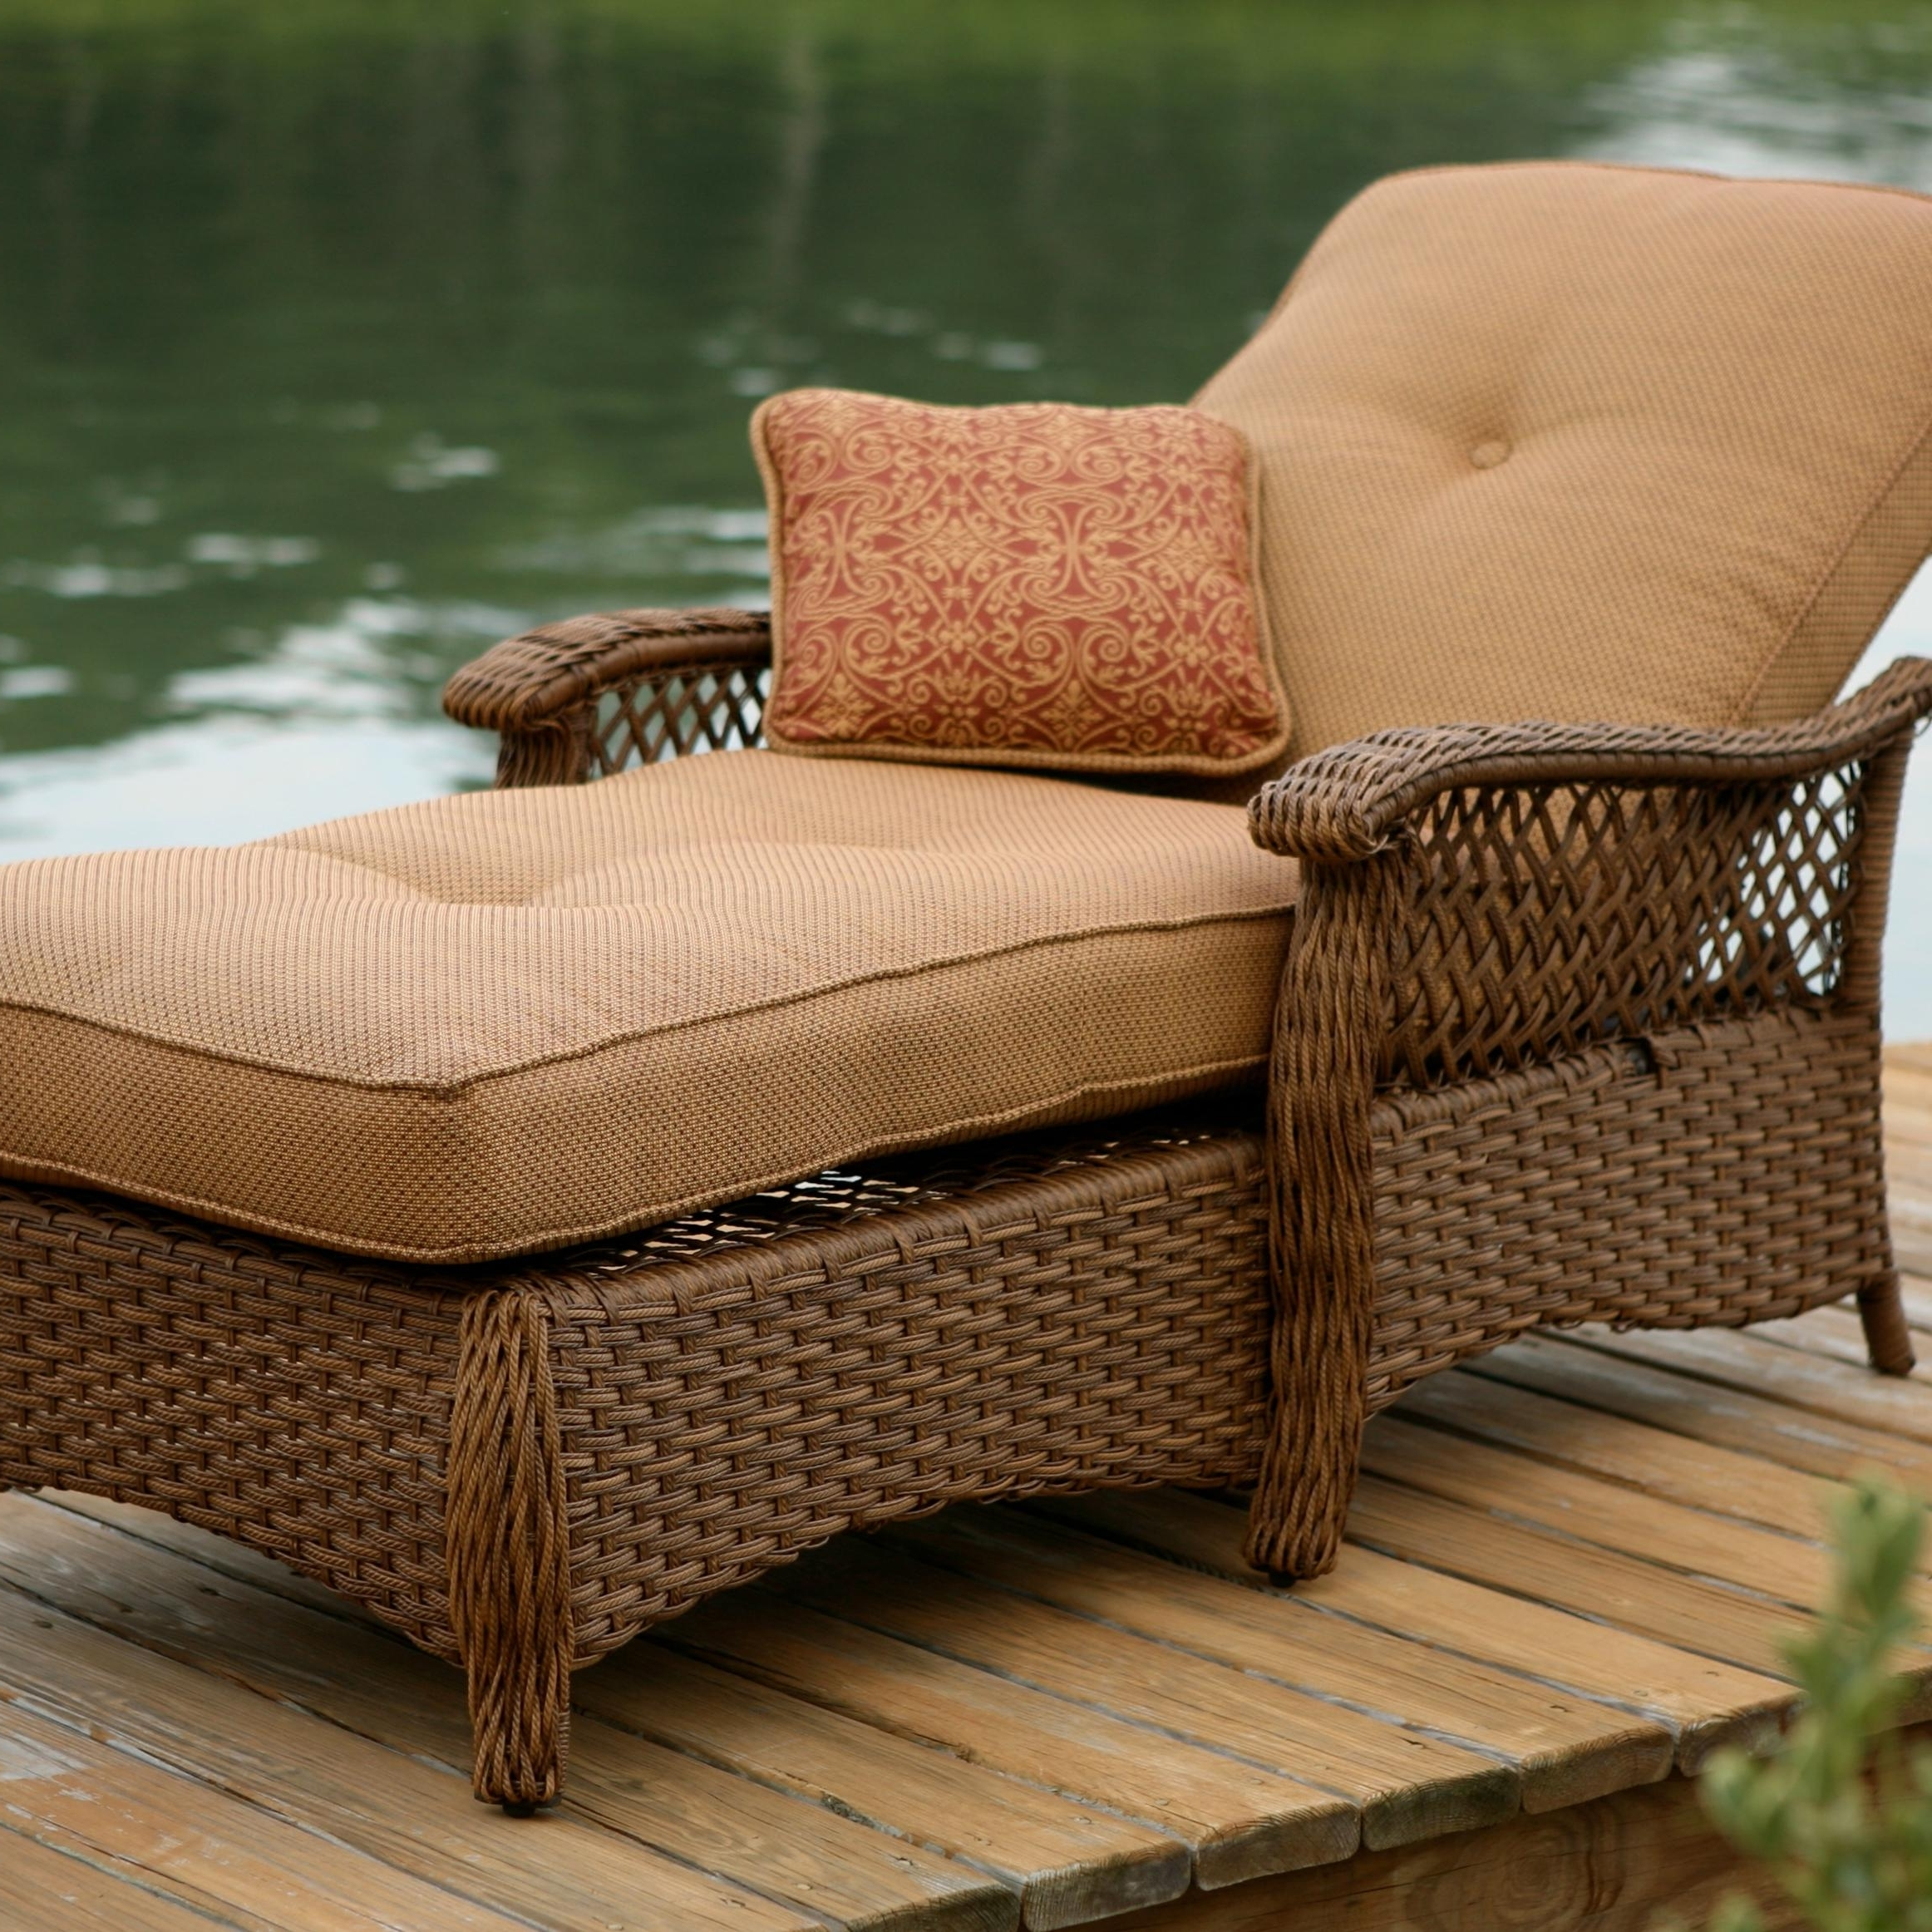 Outdoor Chaise Lounge Chairs With Arms In Well Known Agio Veranda–Agio Outdoor Tan Woven Chaise Lounge Chair With Seat (View 9 of 15)